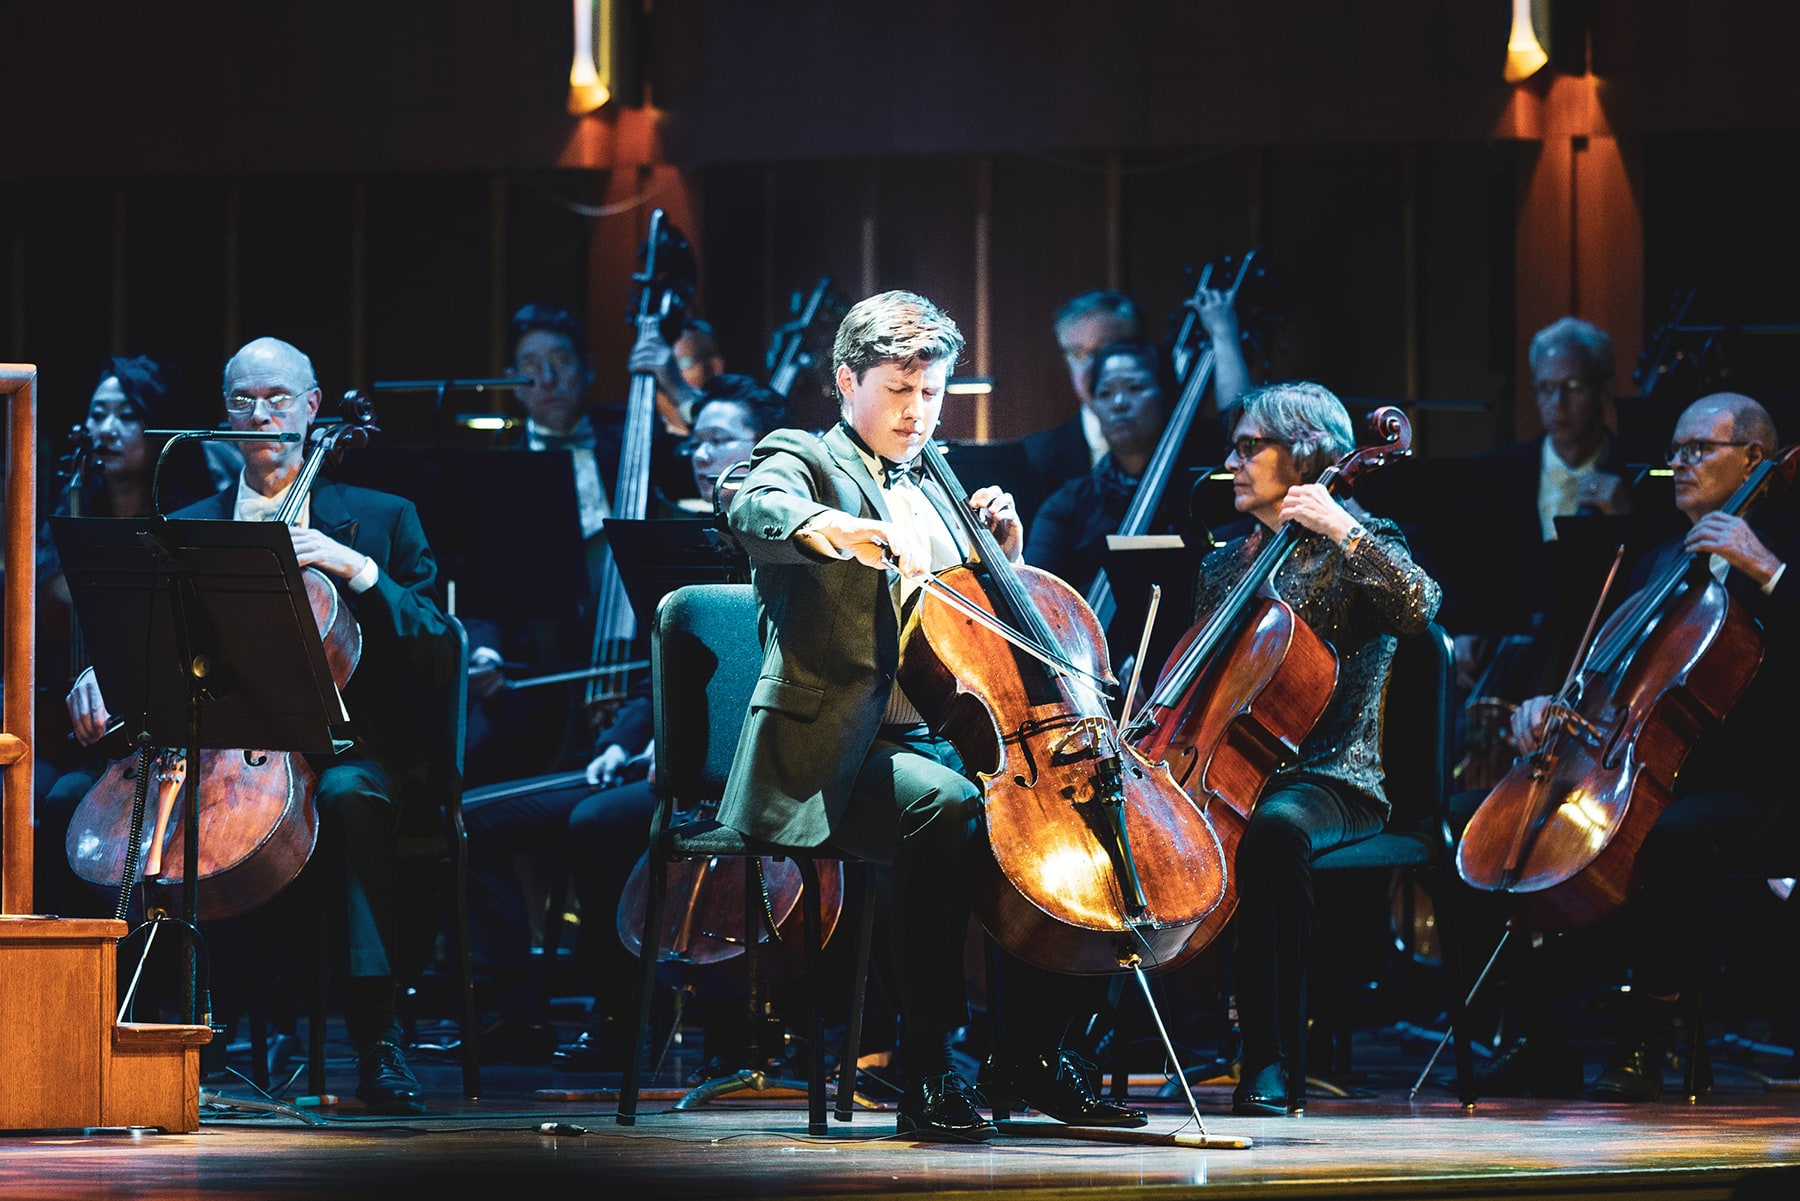 Man playing a cello solo on stage